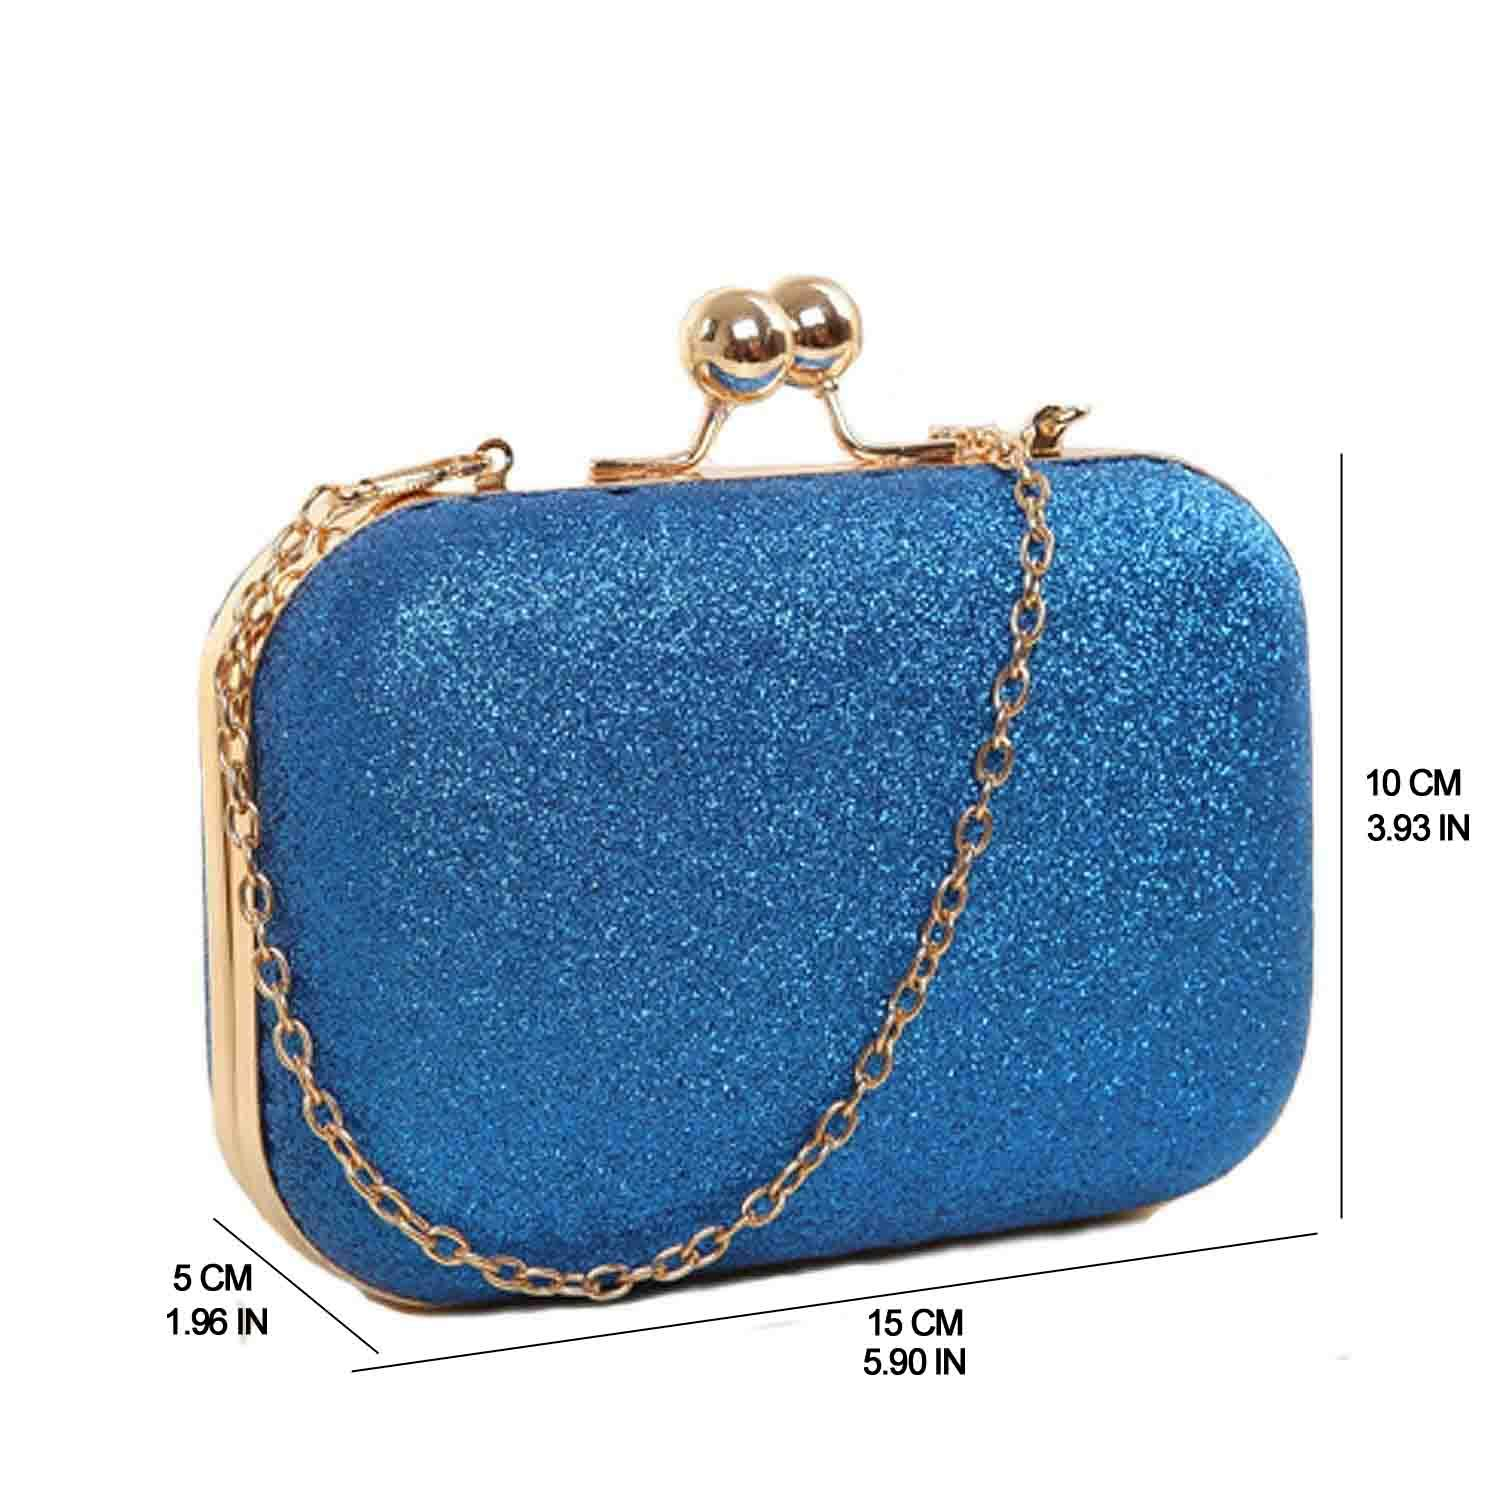 LACIRA Women s Bling Grape Hard Case Clutch (Blue)  Amazon.in  Shoes    Handbags 9e159ba8e0d7